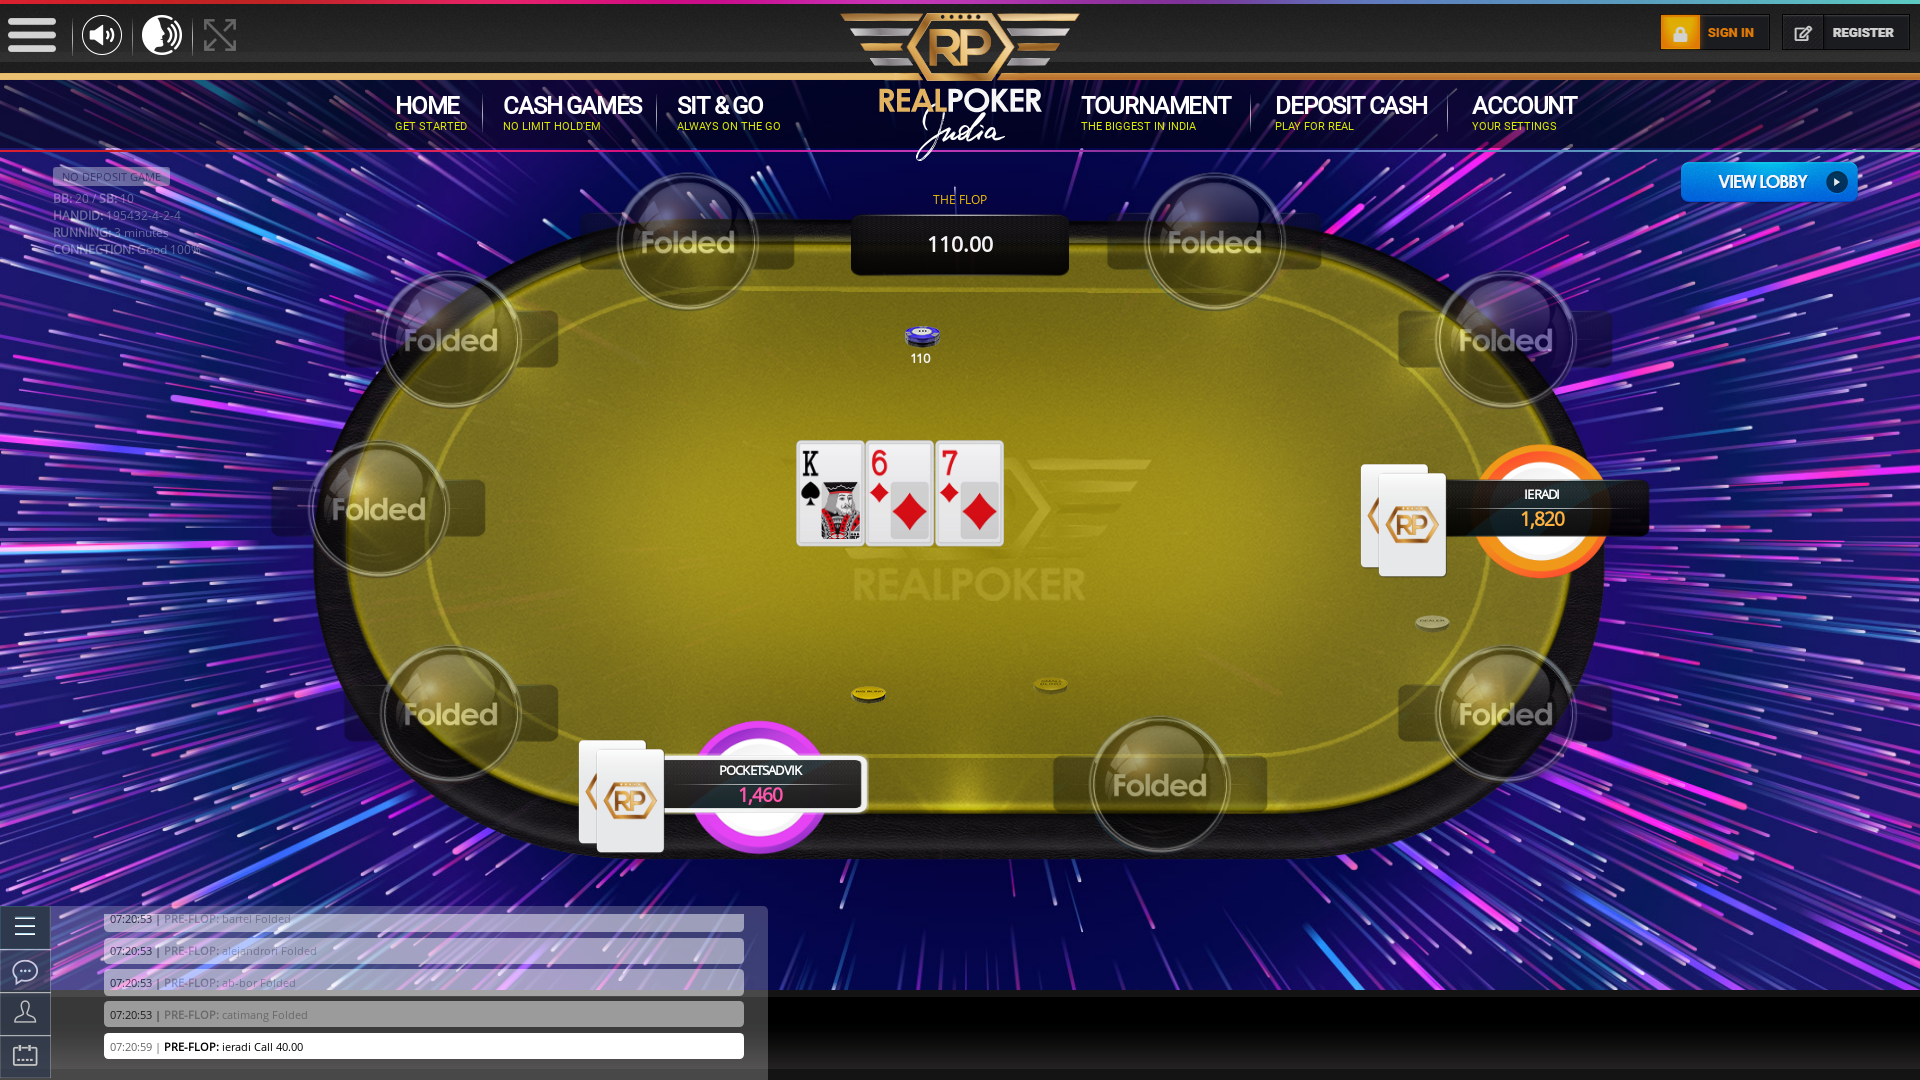 Indian 10 player poker in the 3rd minute